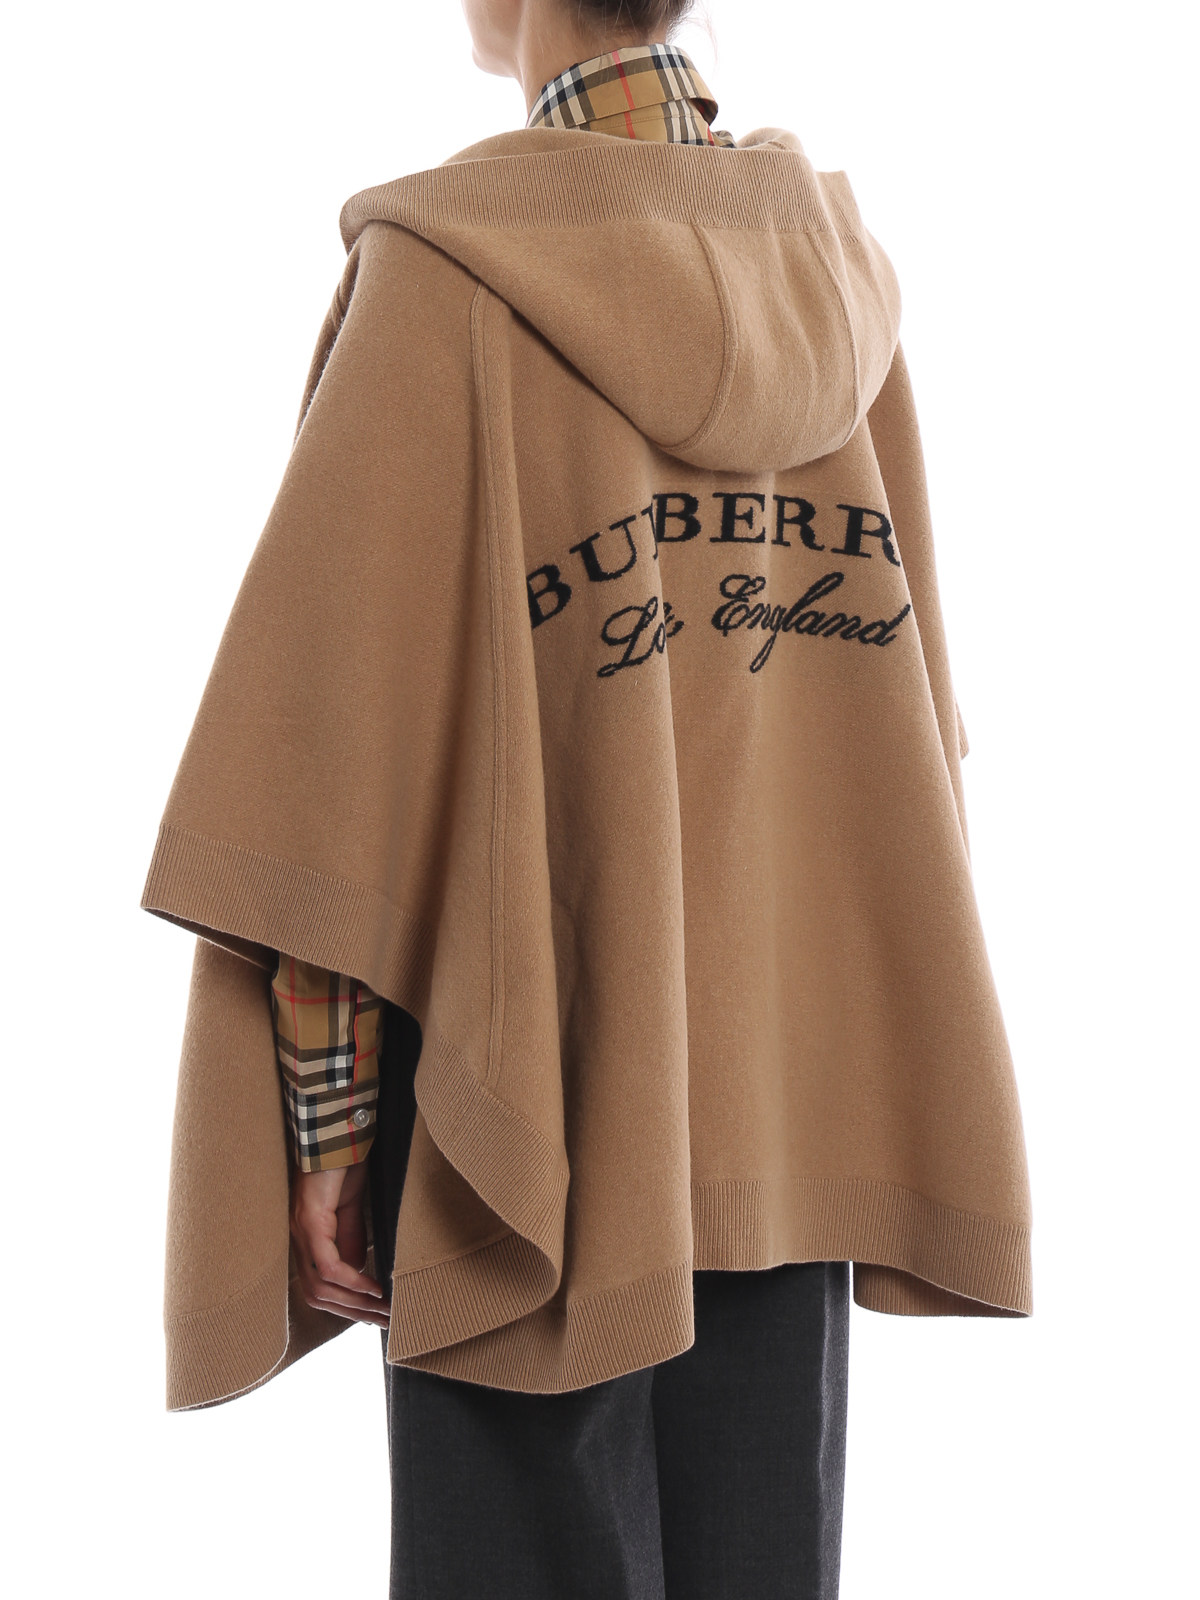 Burberry Cape Beige Capes Amp Ponchos 4020686